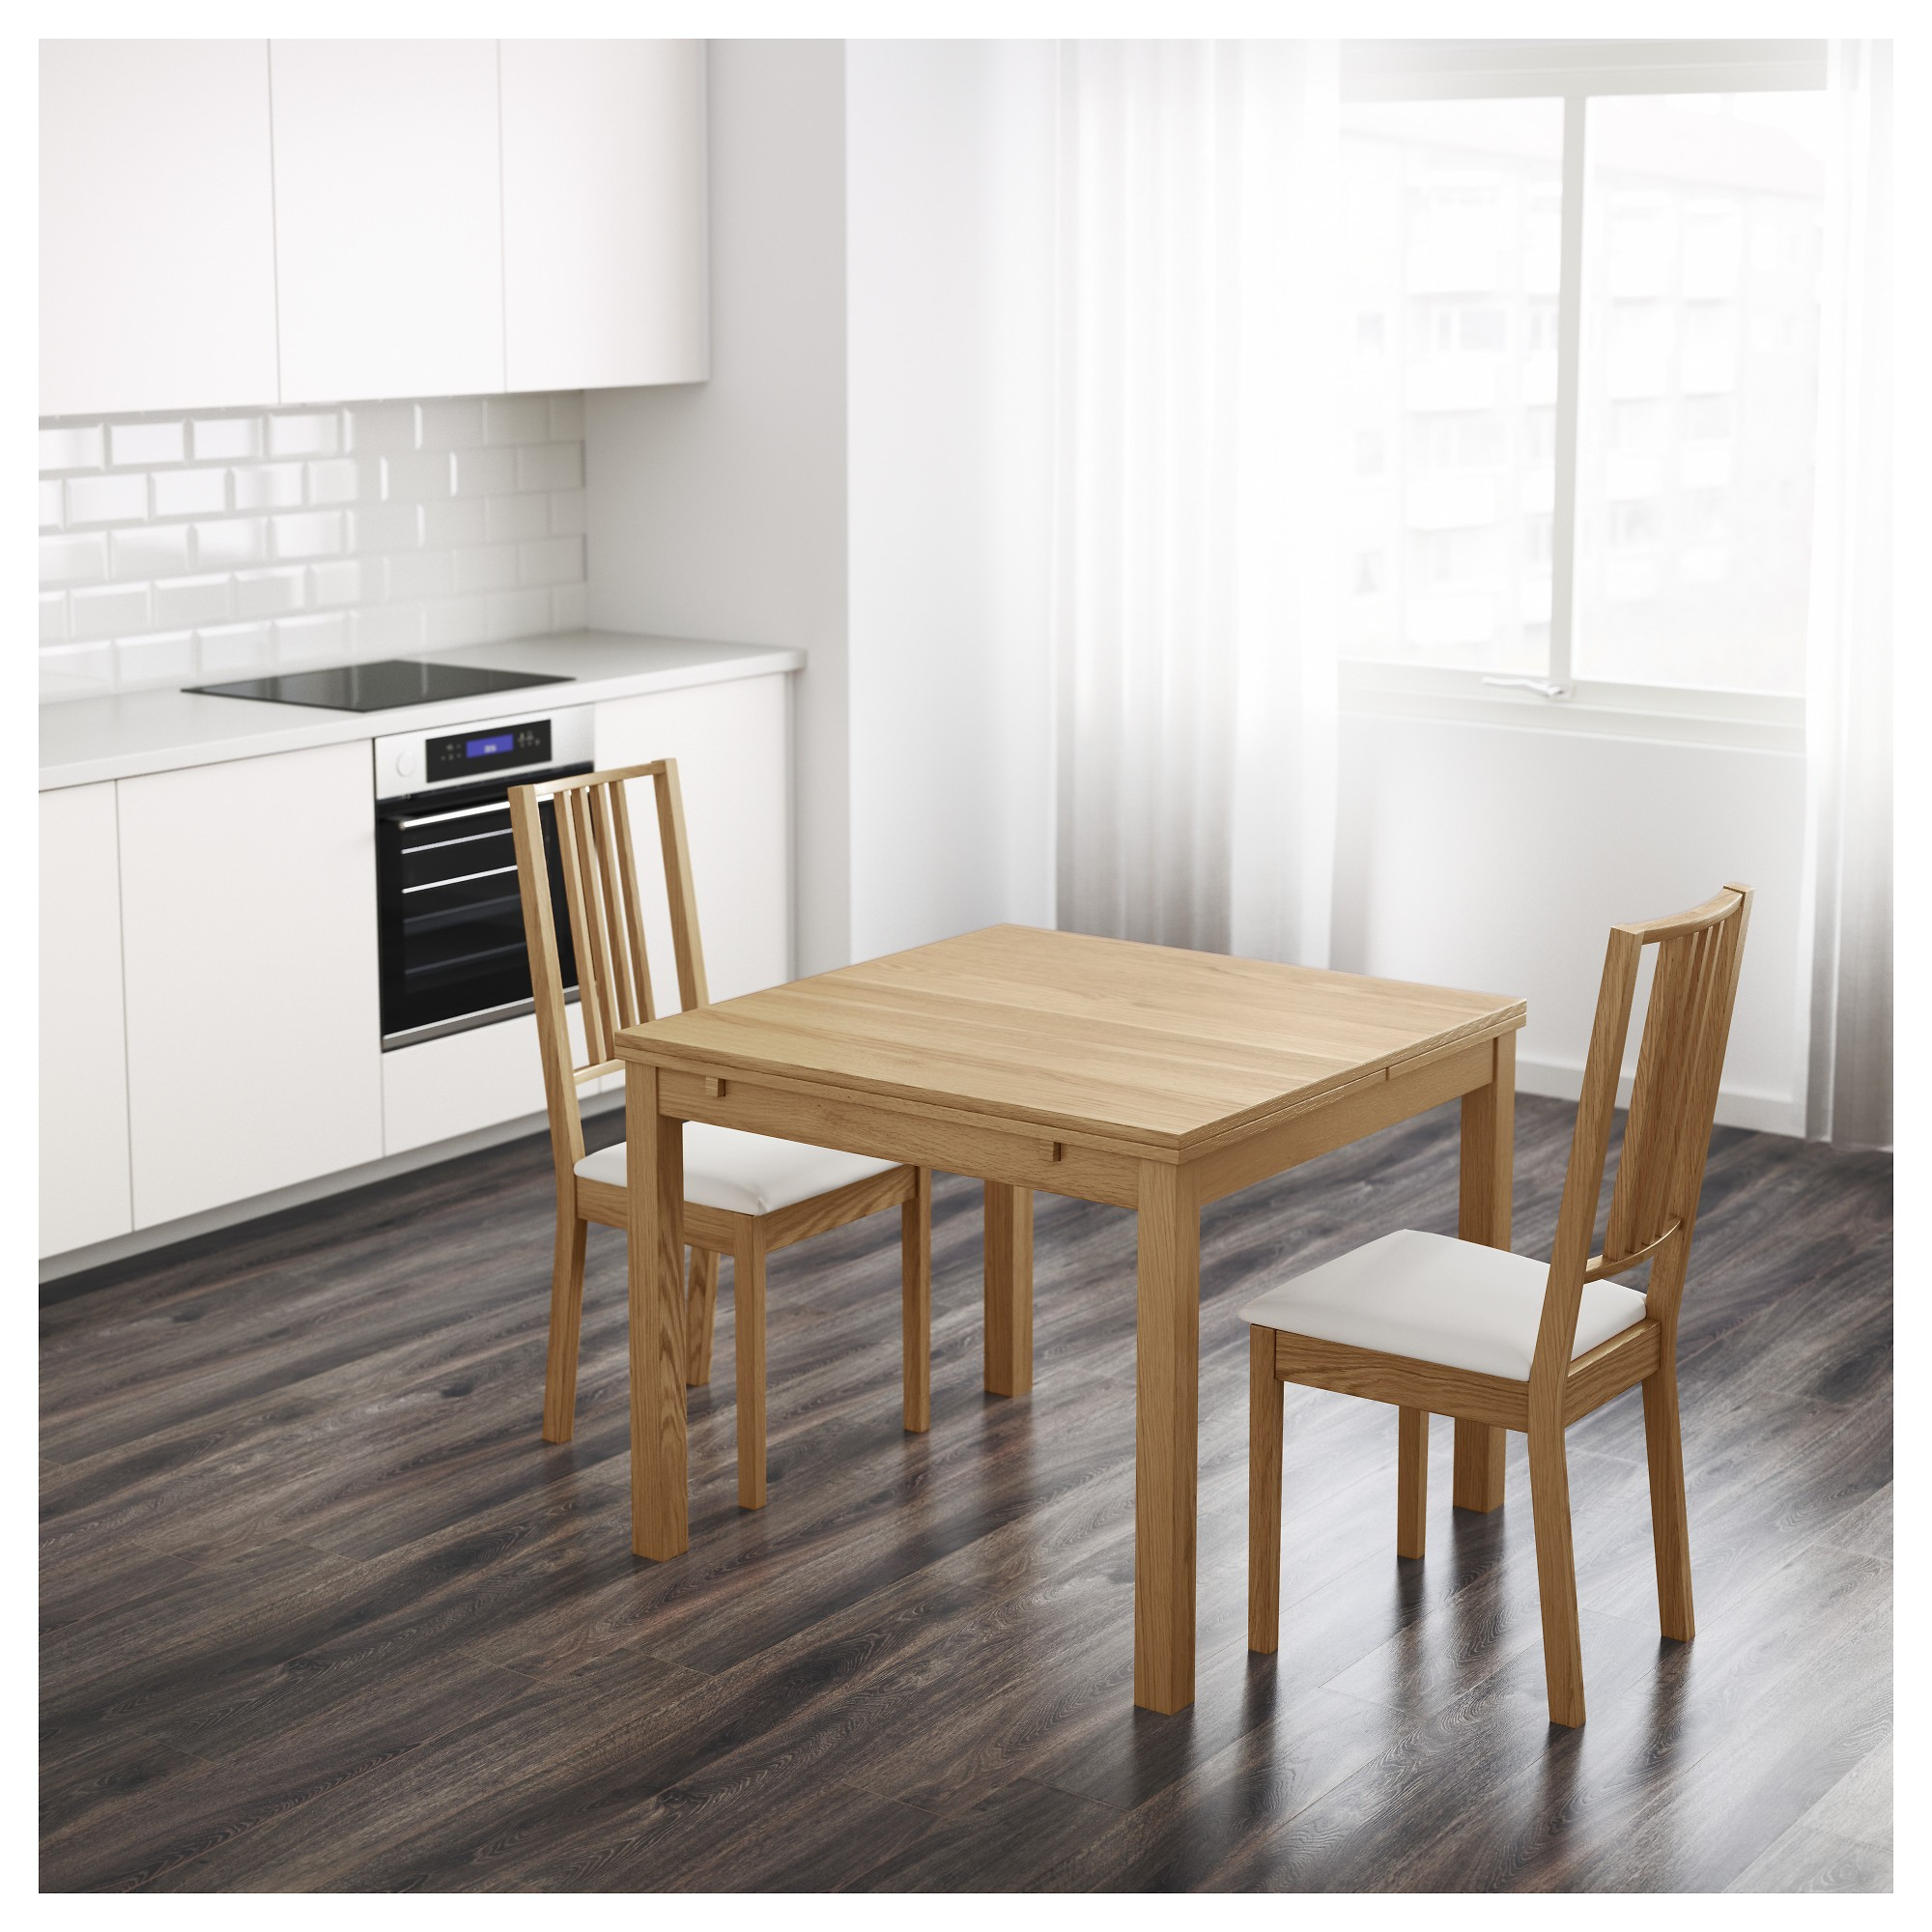 Table cuisine extensible ikea cuisine id es de for Table extensible cuisine